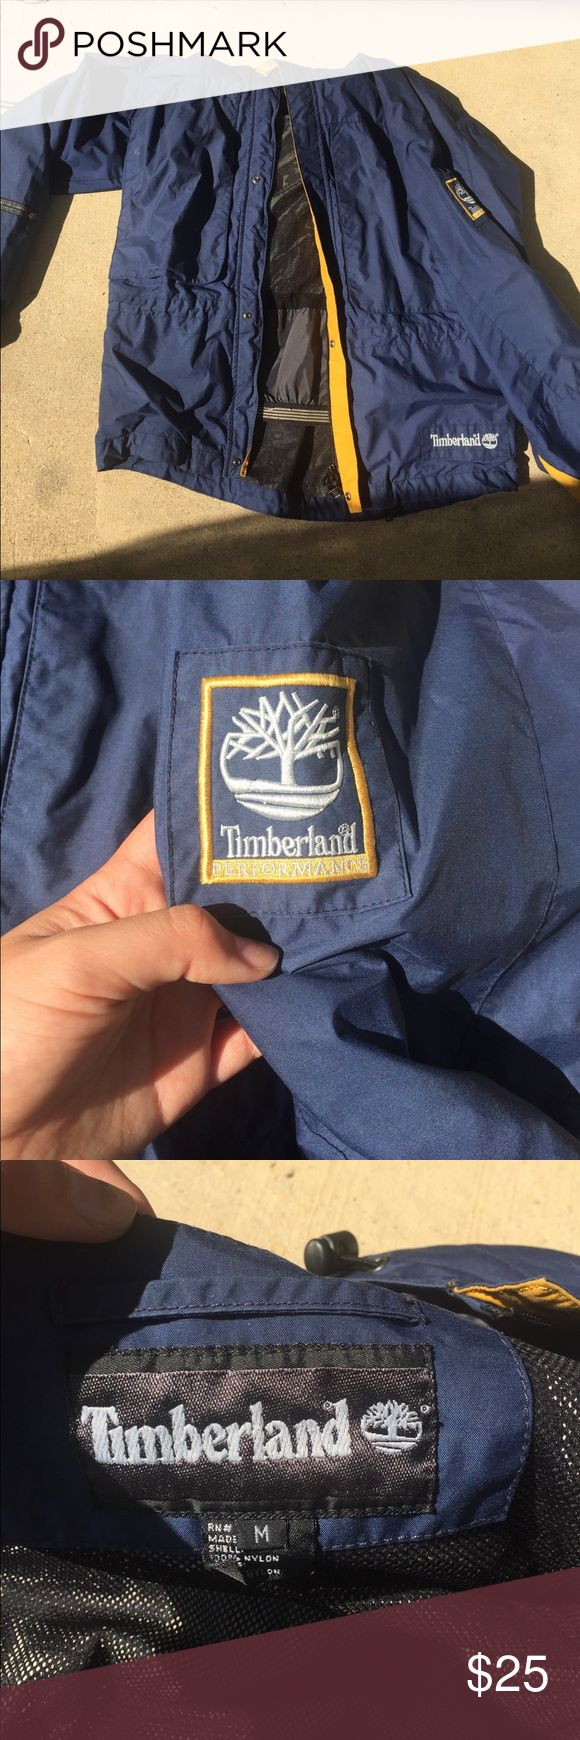 Timberland jacket The zipper is broken Timberland Jackets & Coats Trench Coats